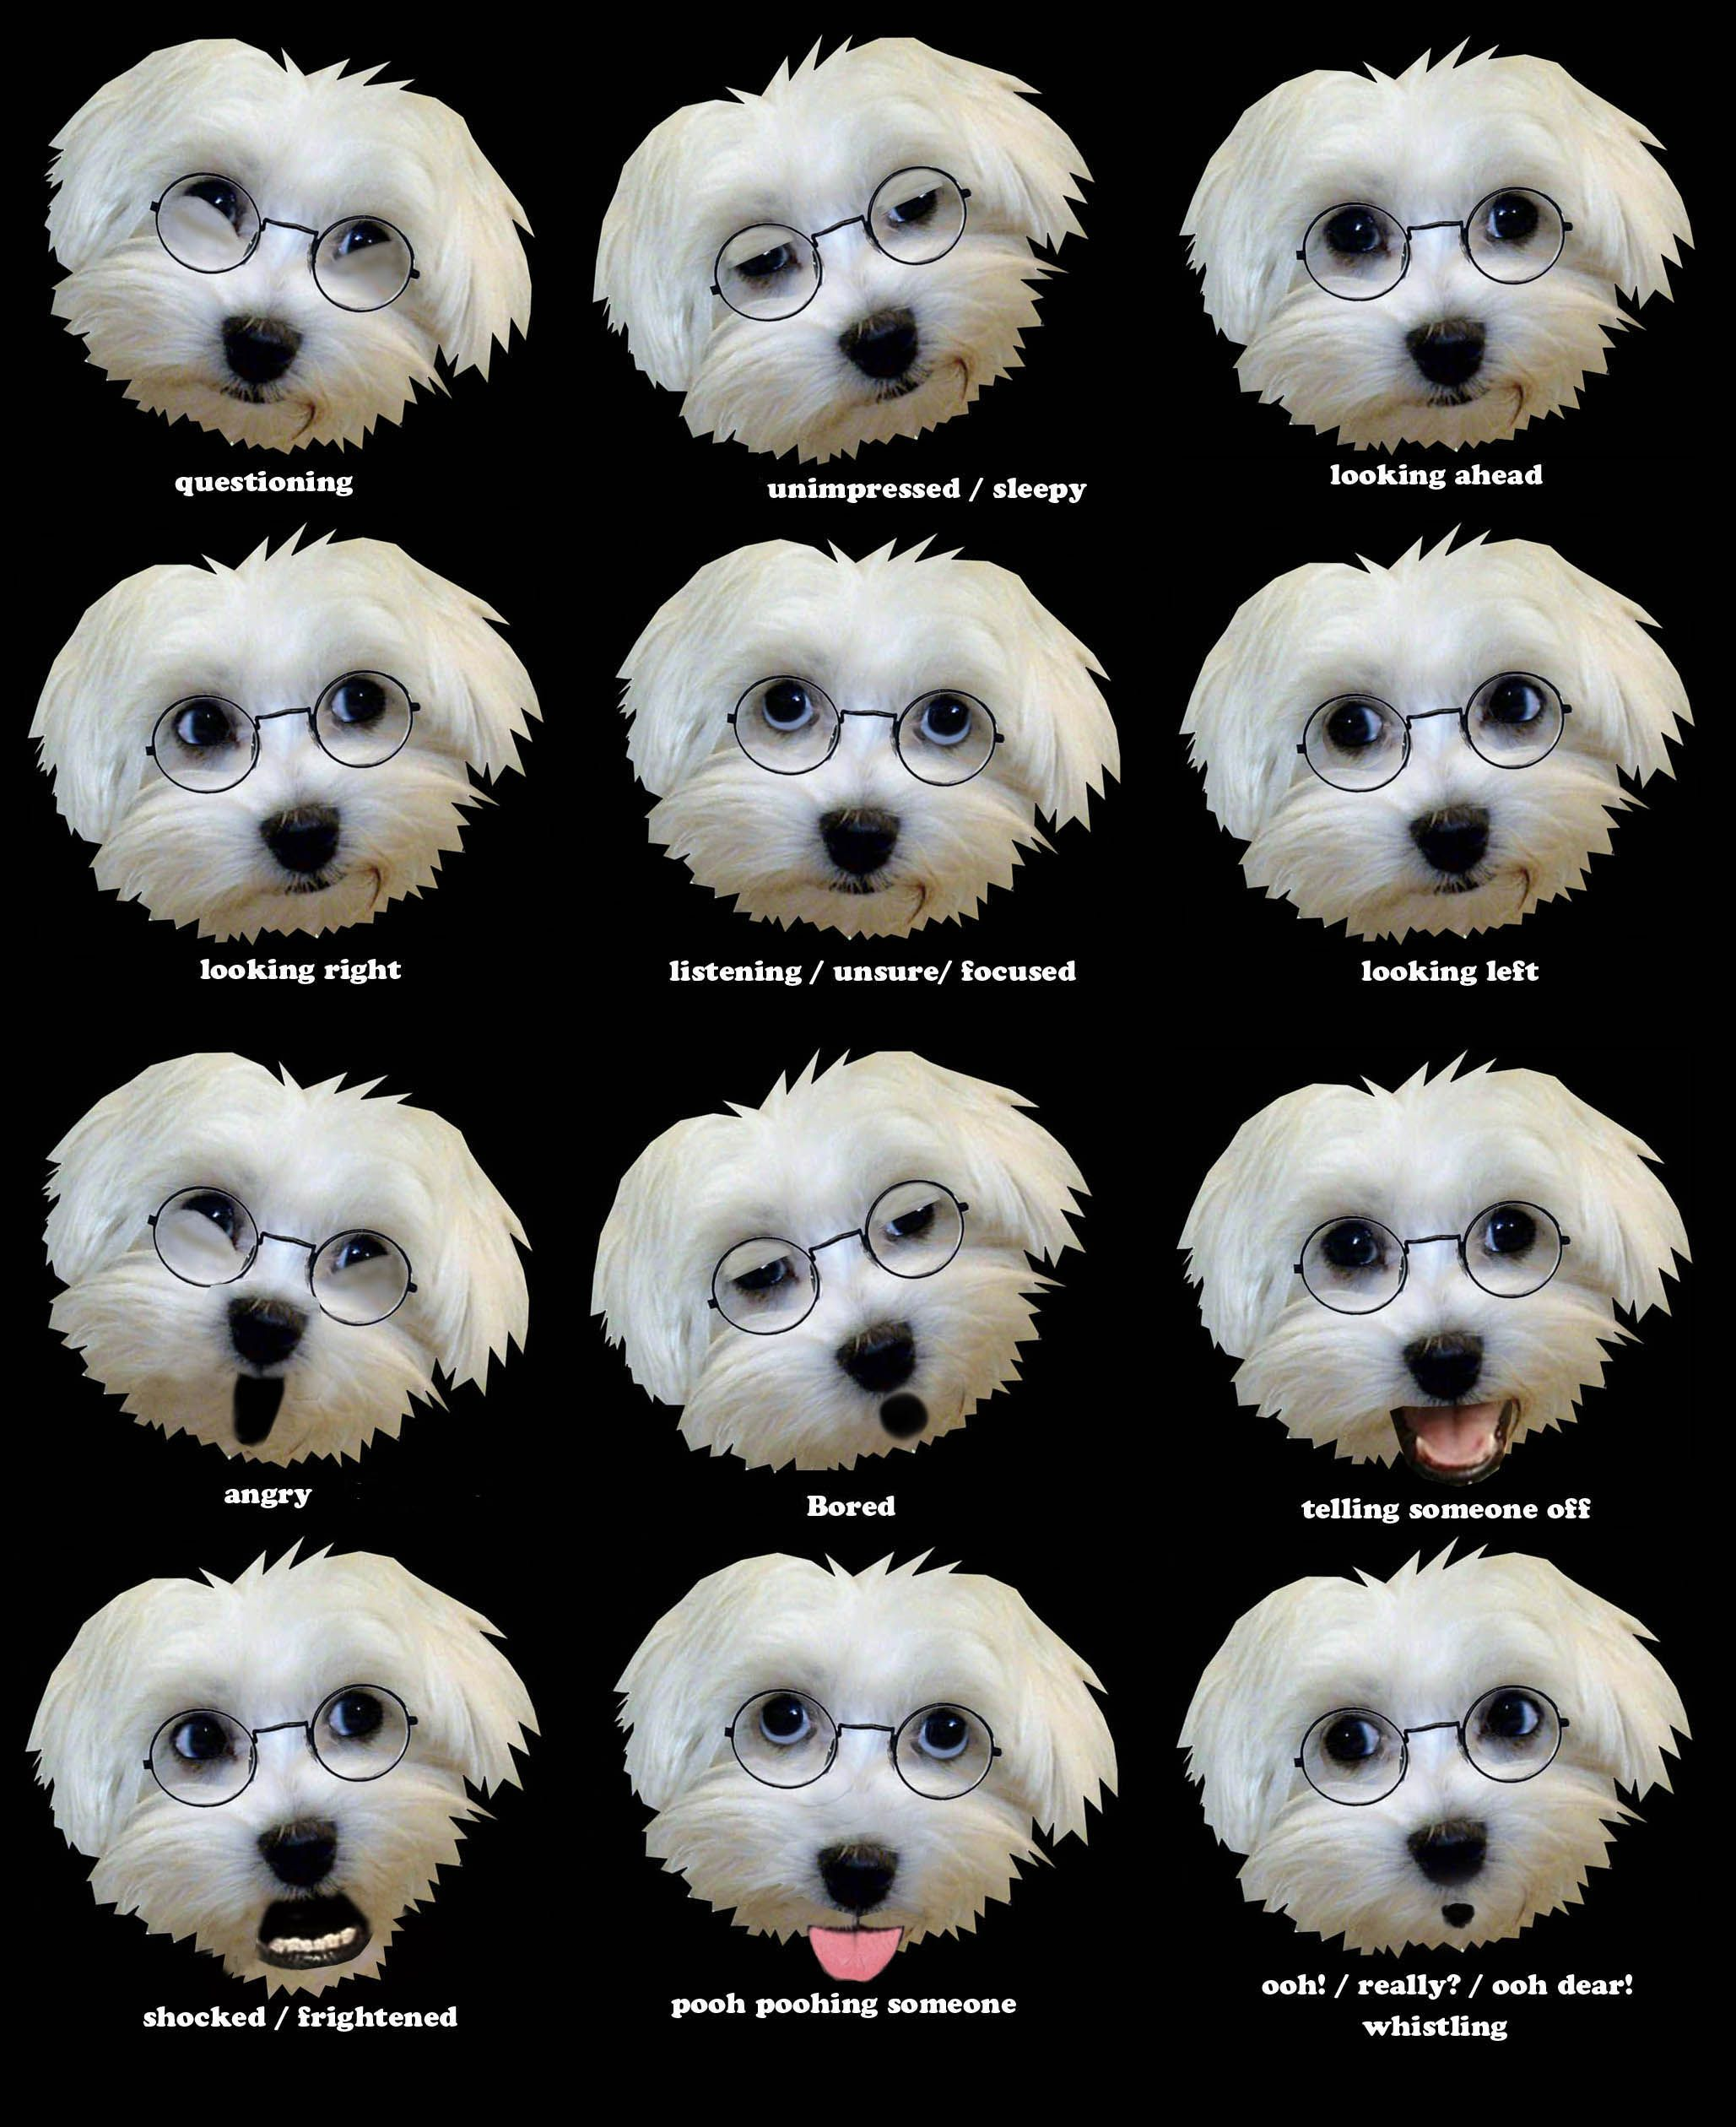 I am really interested in getting a maltese?